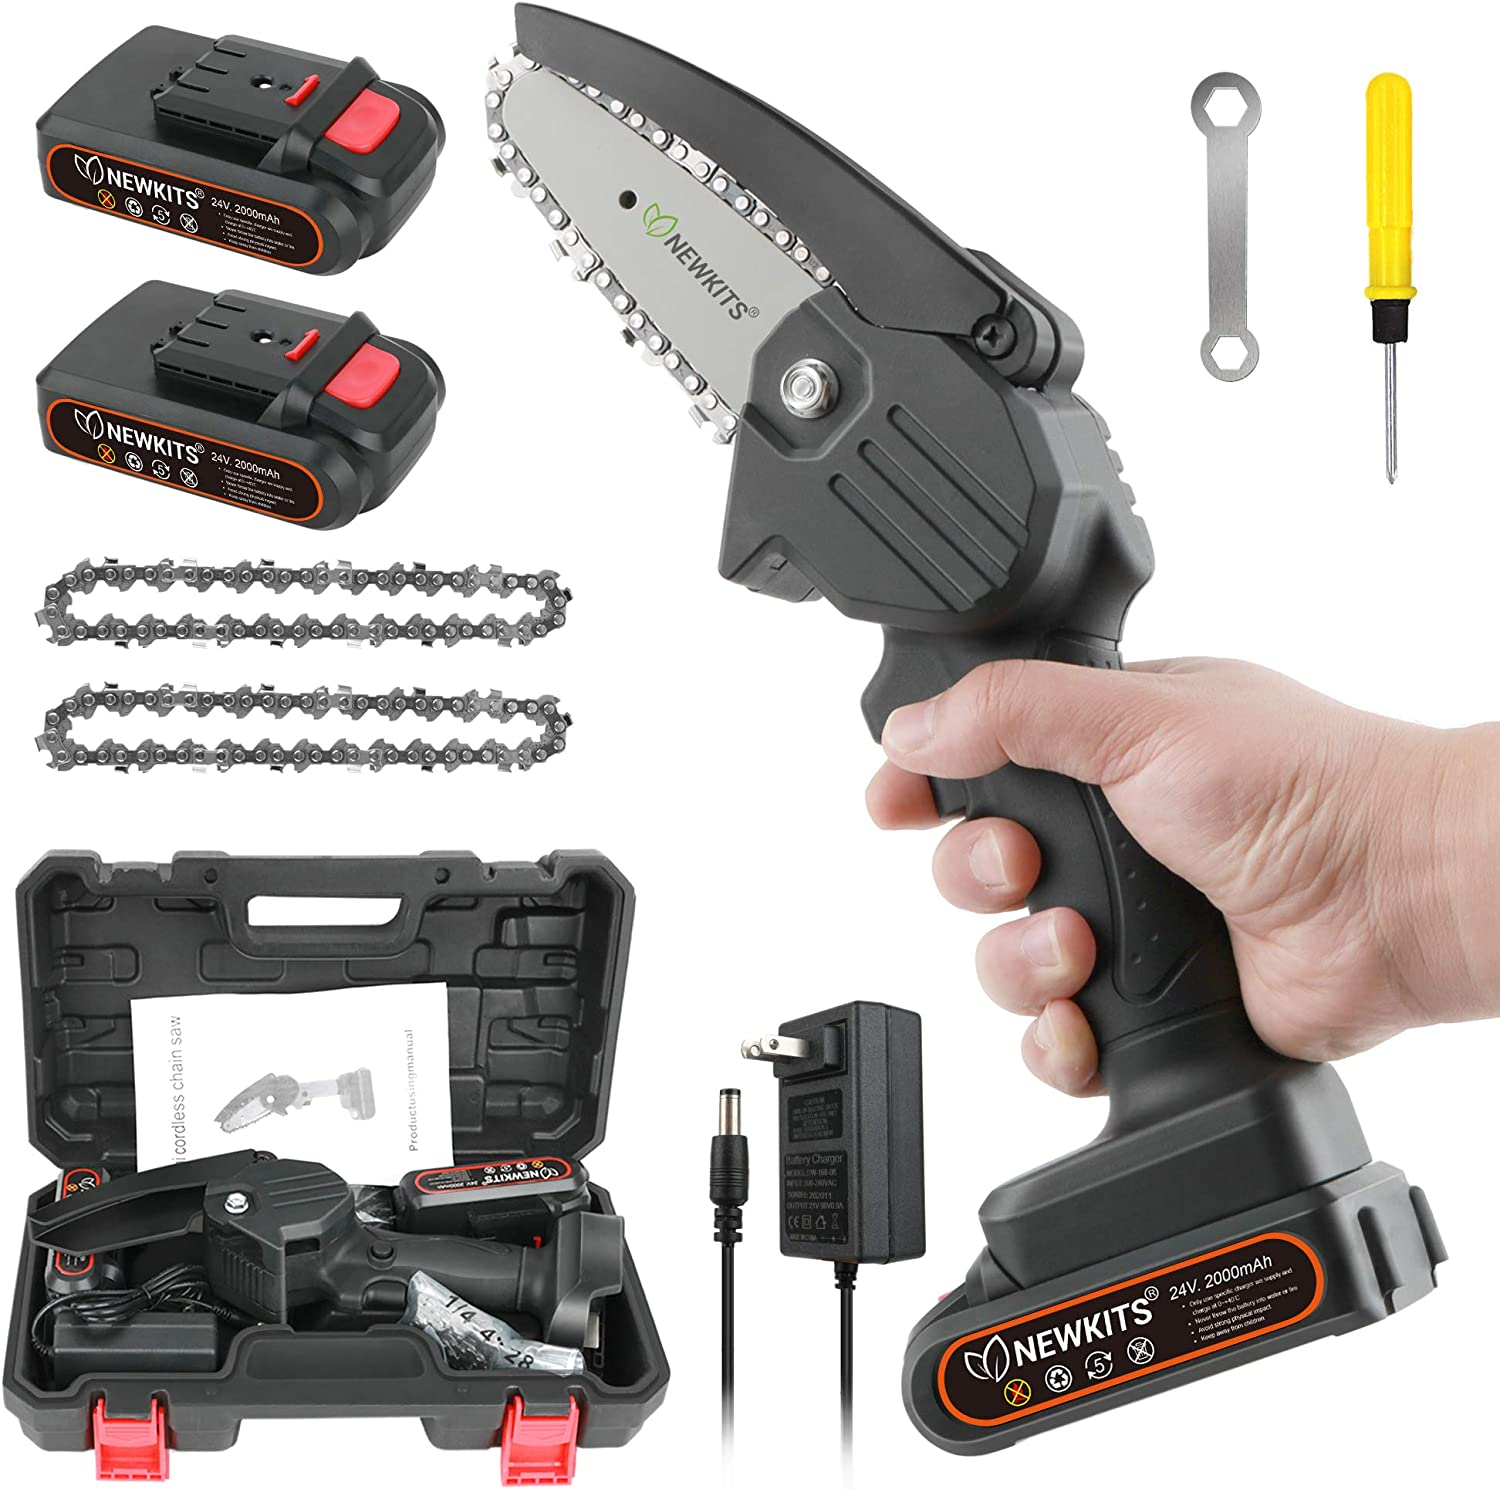 Mini Chainsaw, 24V Portable Electric Chainsaw 550W High Power Cordless Power Chain Saws NEWKITS Pruning Shears Chainsaw for Courtyard and GardenTree Branch Wood Cutting